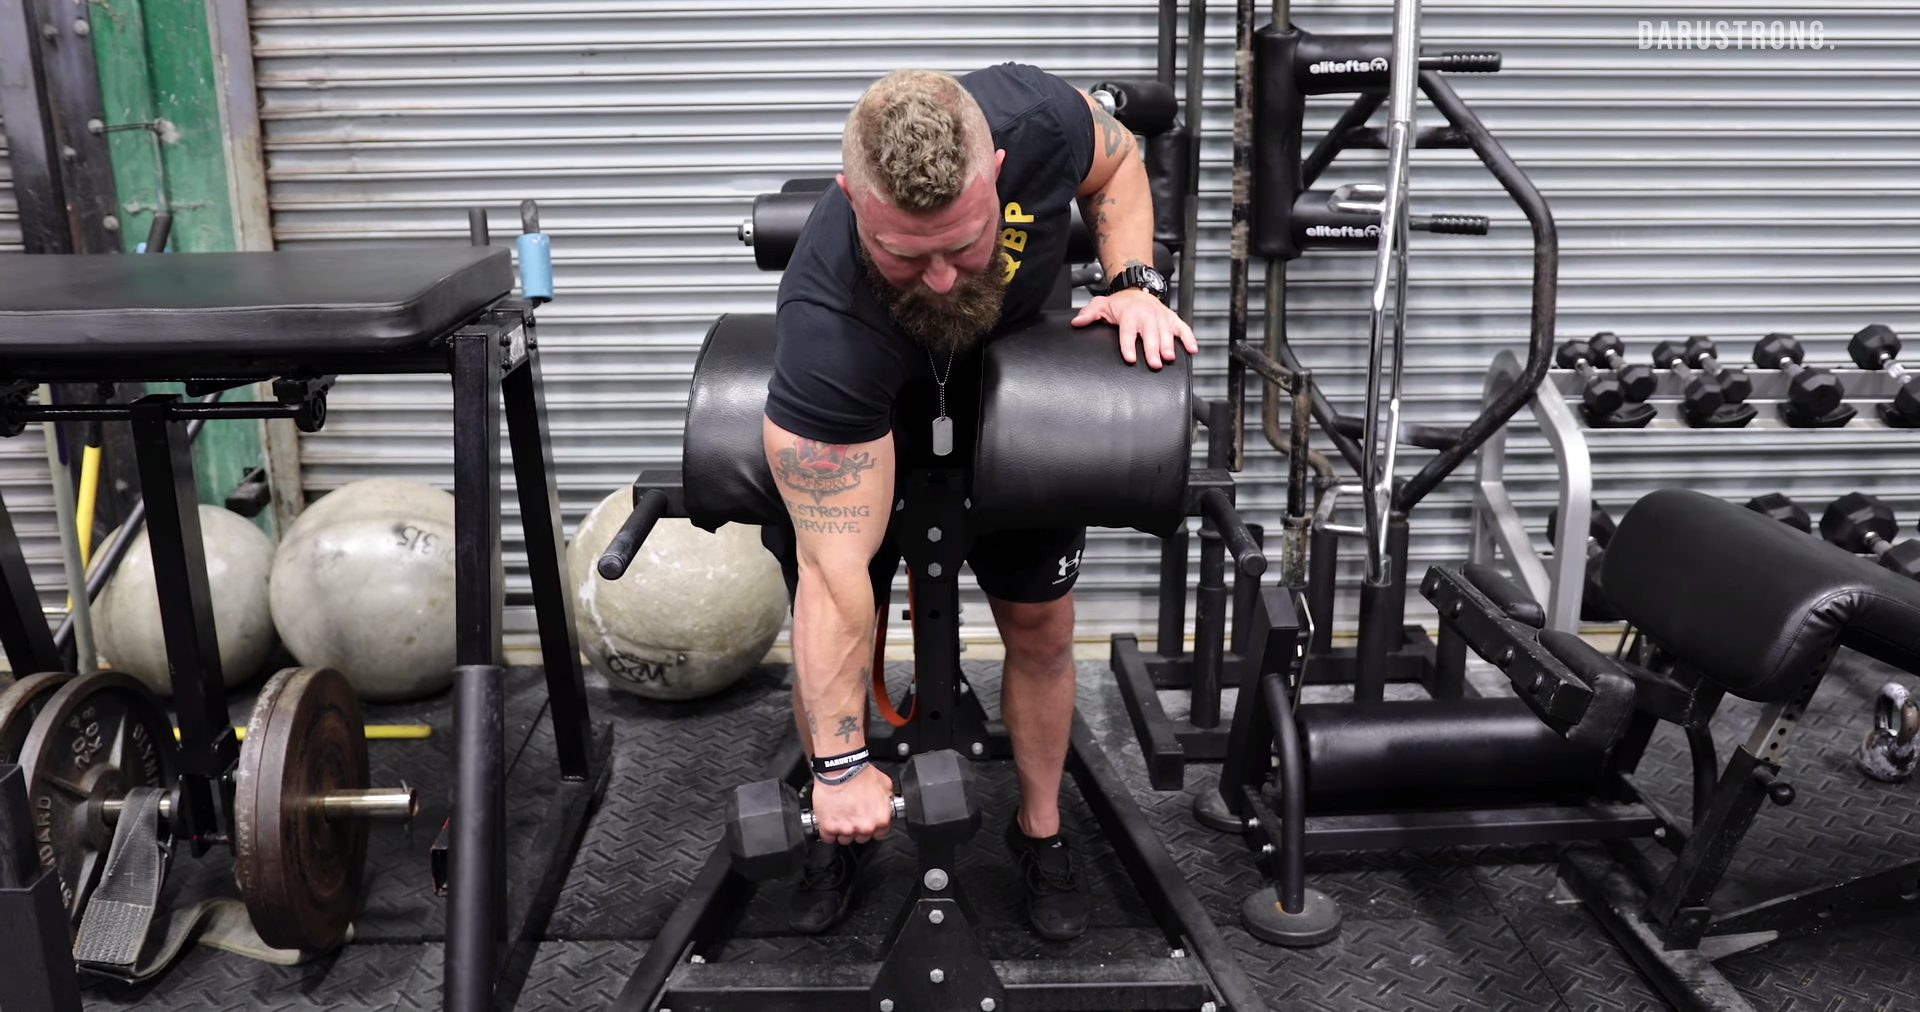 4 Arm Exercises to Increase Punching Power 4